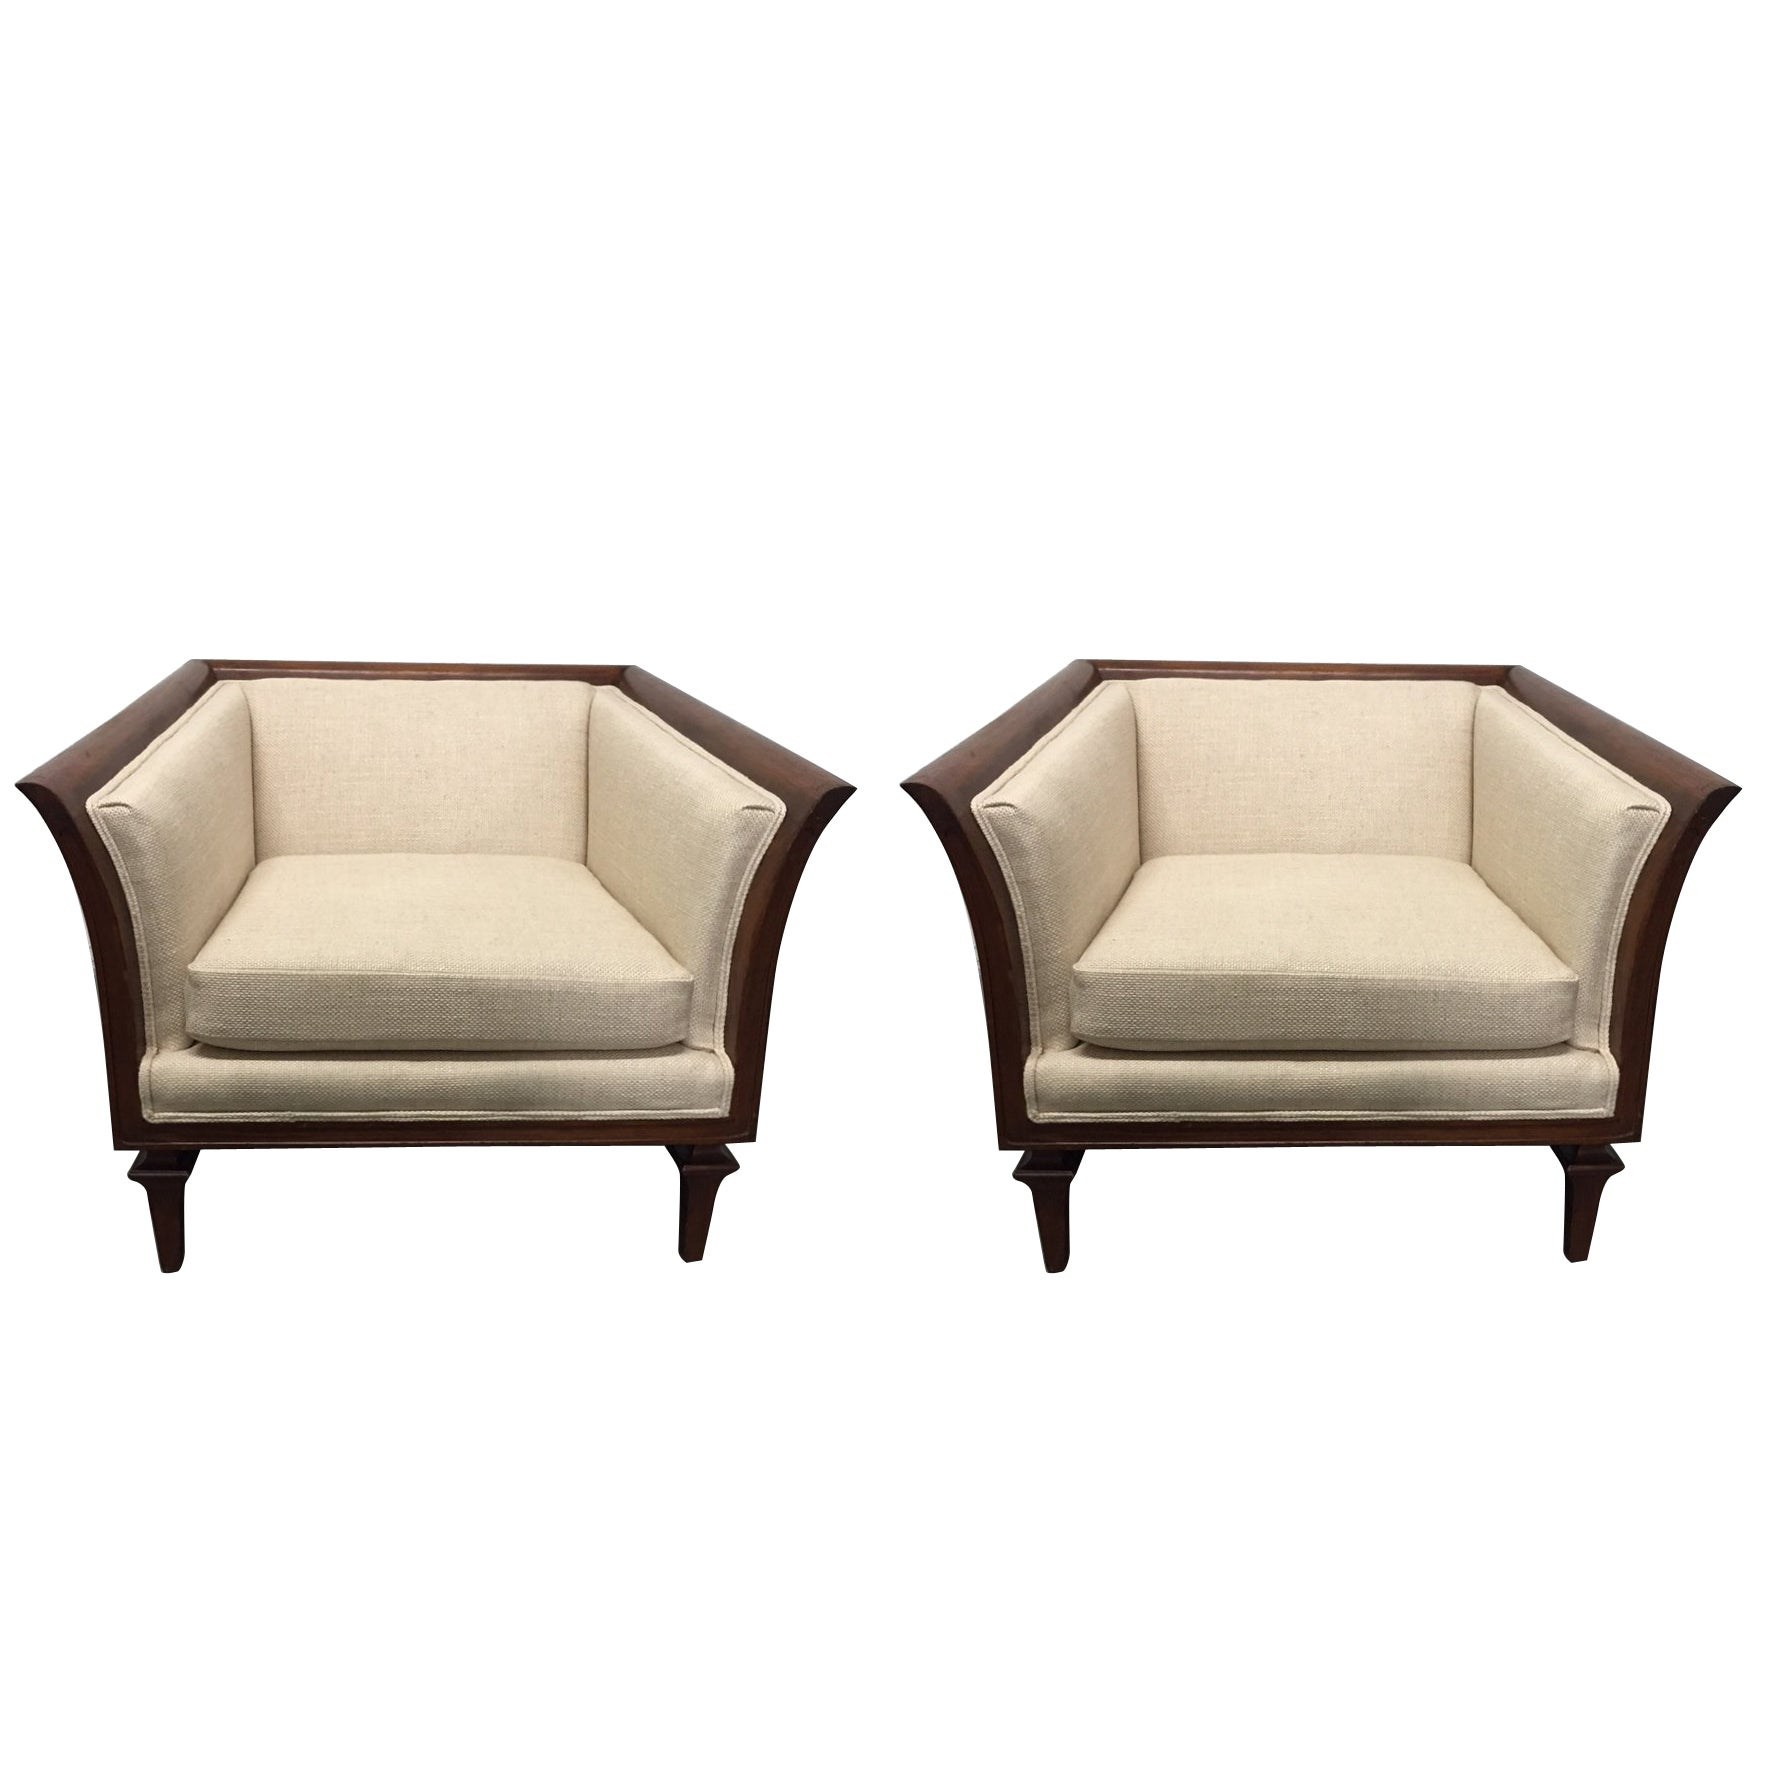 Pair of Sculptural Walnut Lounge Chairs